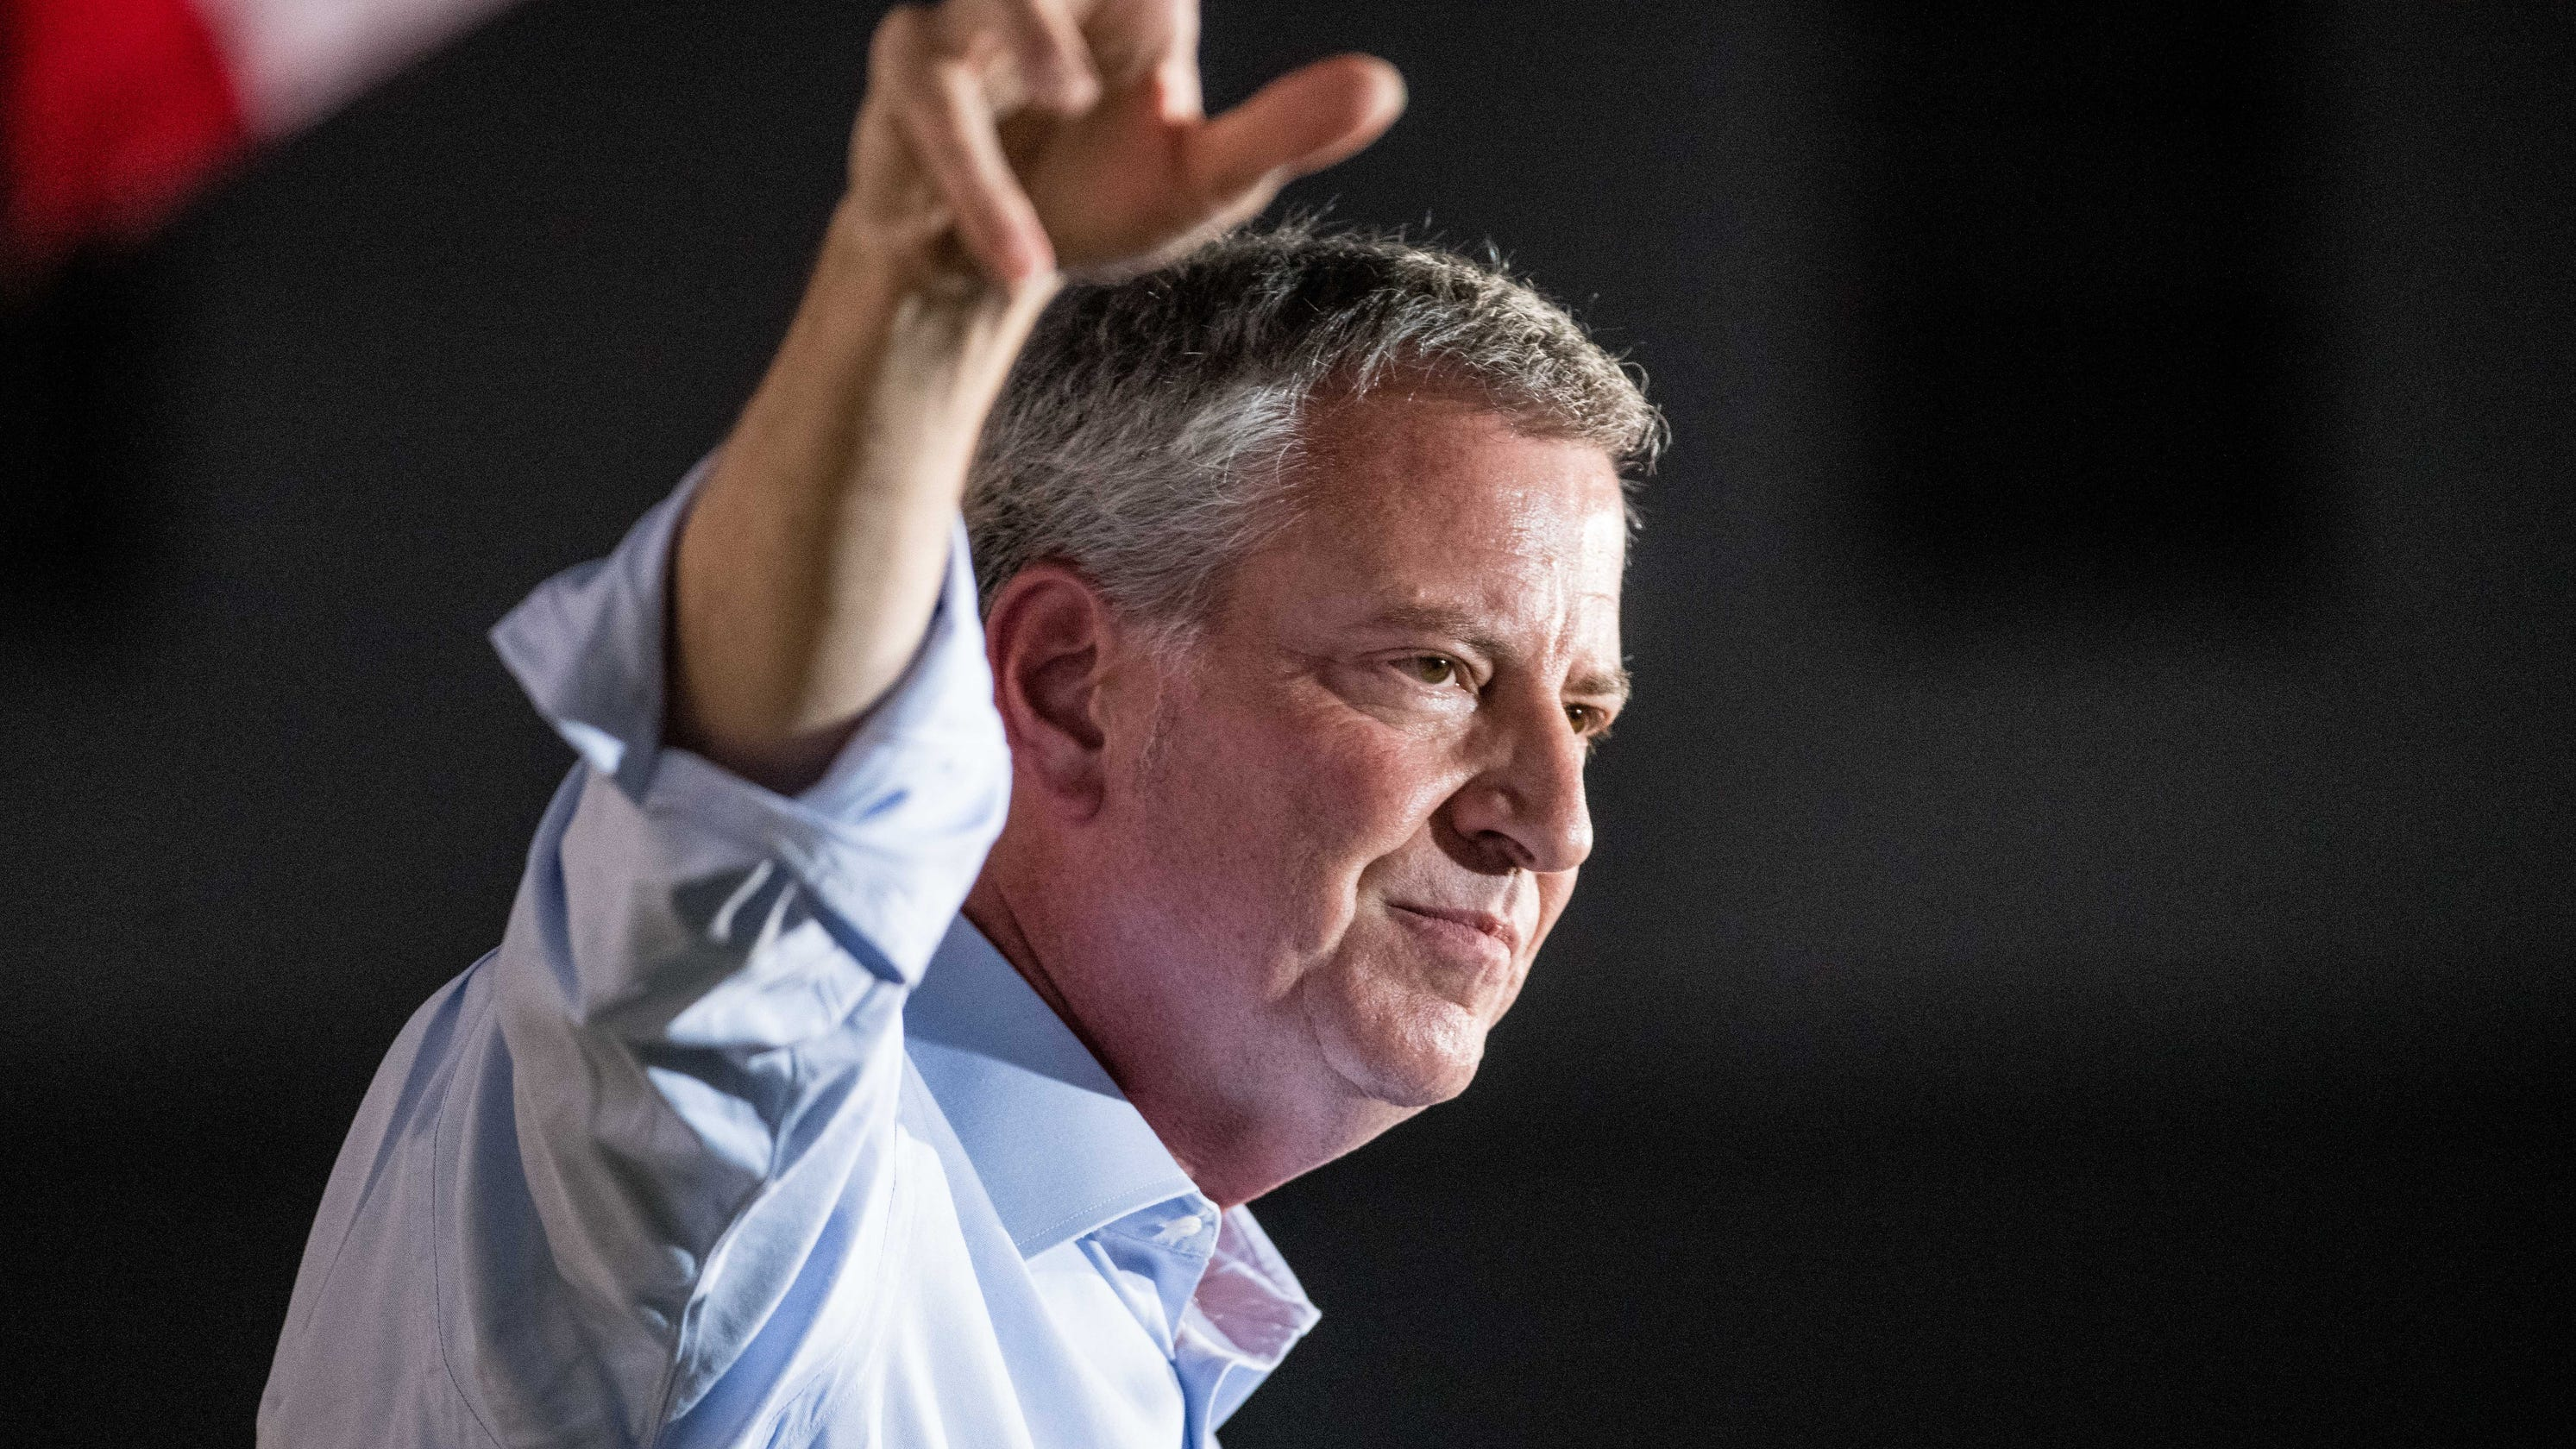 New York Post blasts Bill de Blasio with 'obituary' for his ended presidential campaign